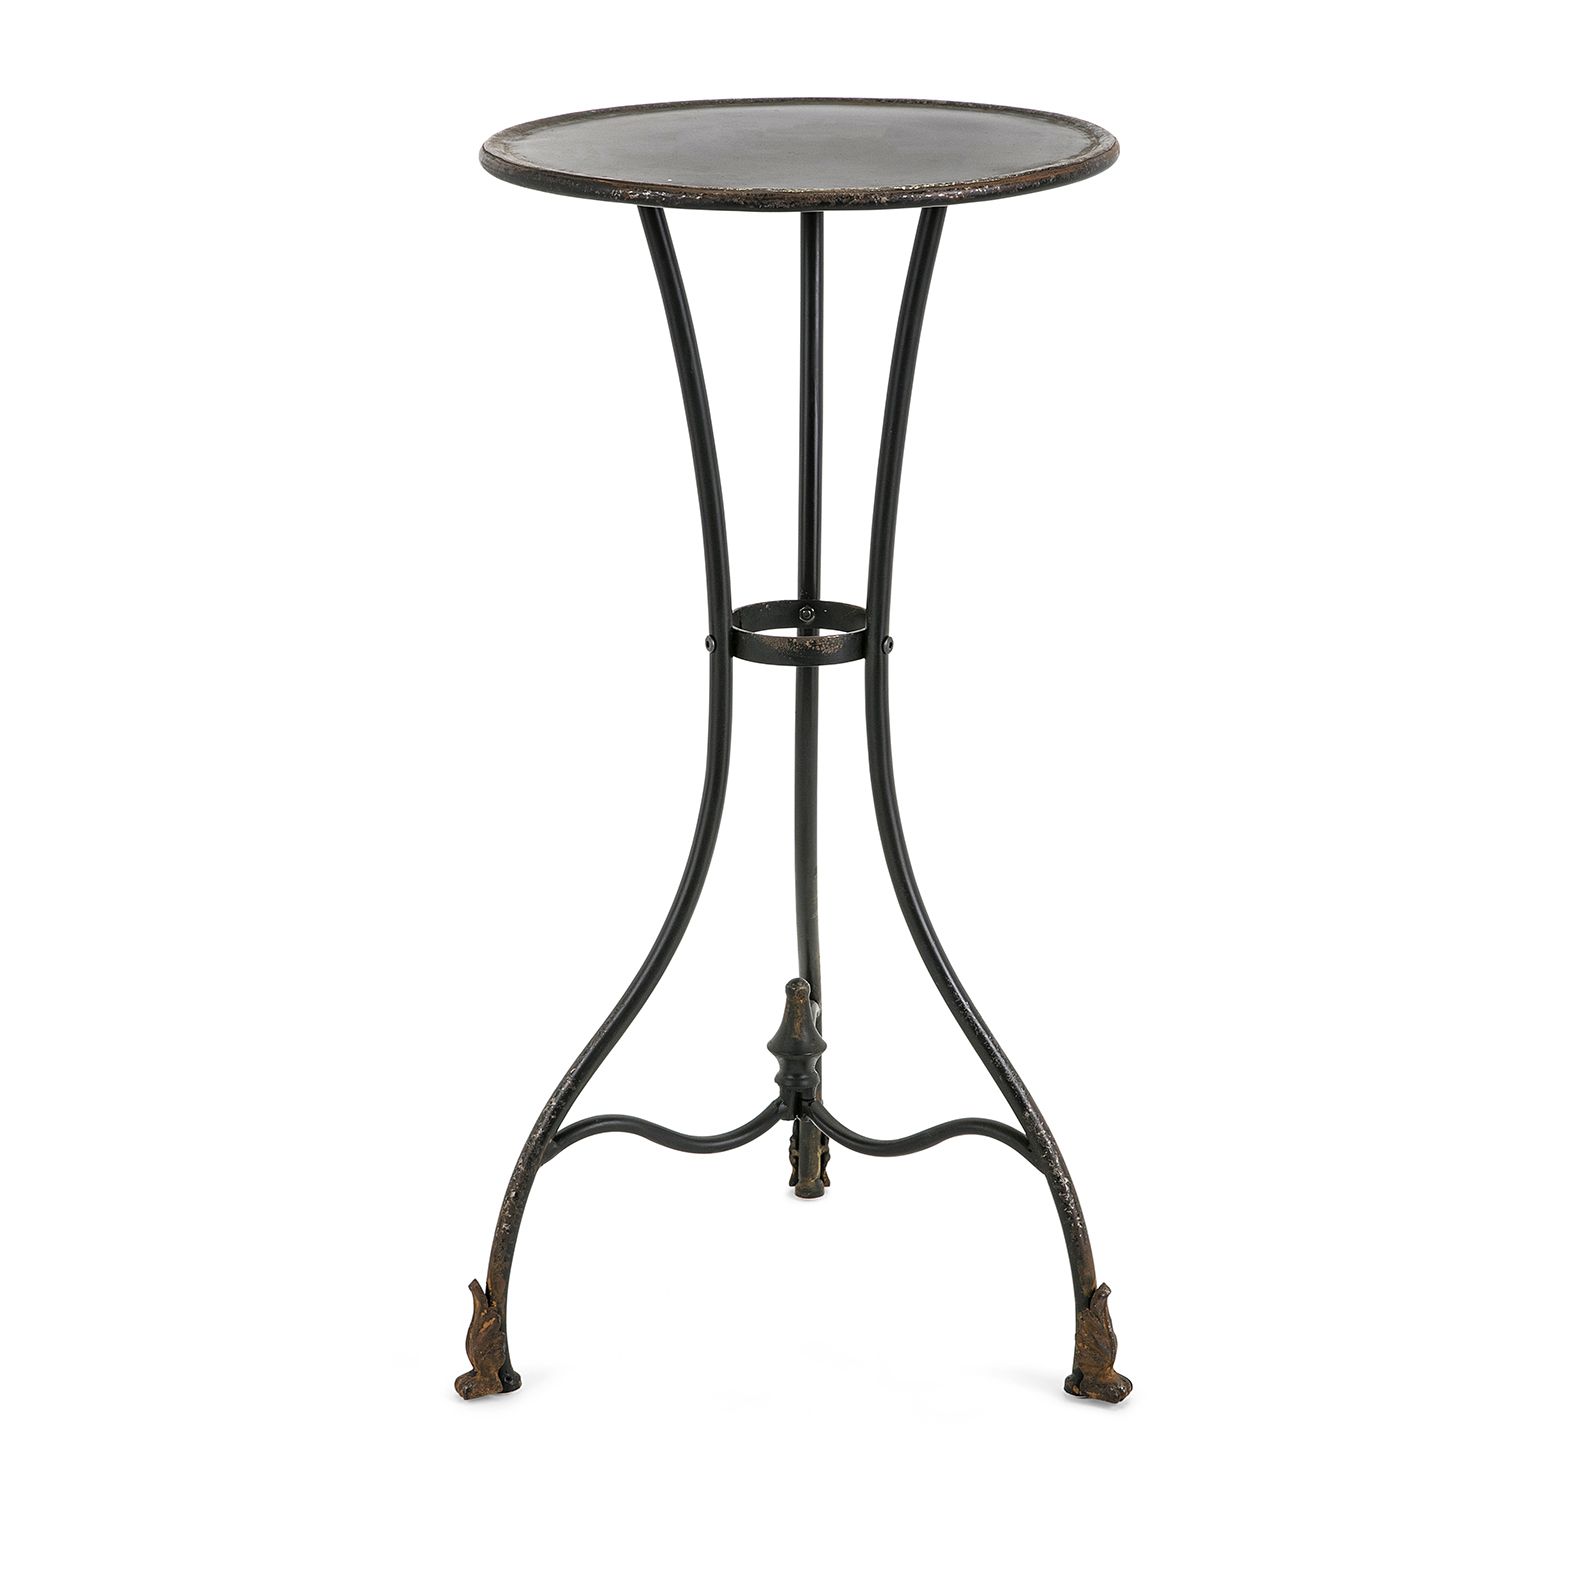 cliffton large metal accent table roost and galley slim round tables grey lamp dinner coffee melbourne bunnings outdoor couch contemporary end lucite stacking bar set small tall